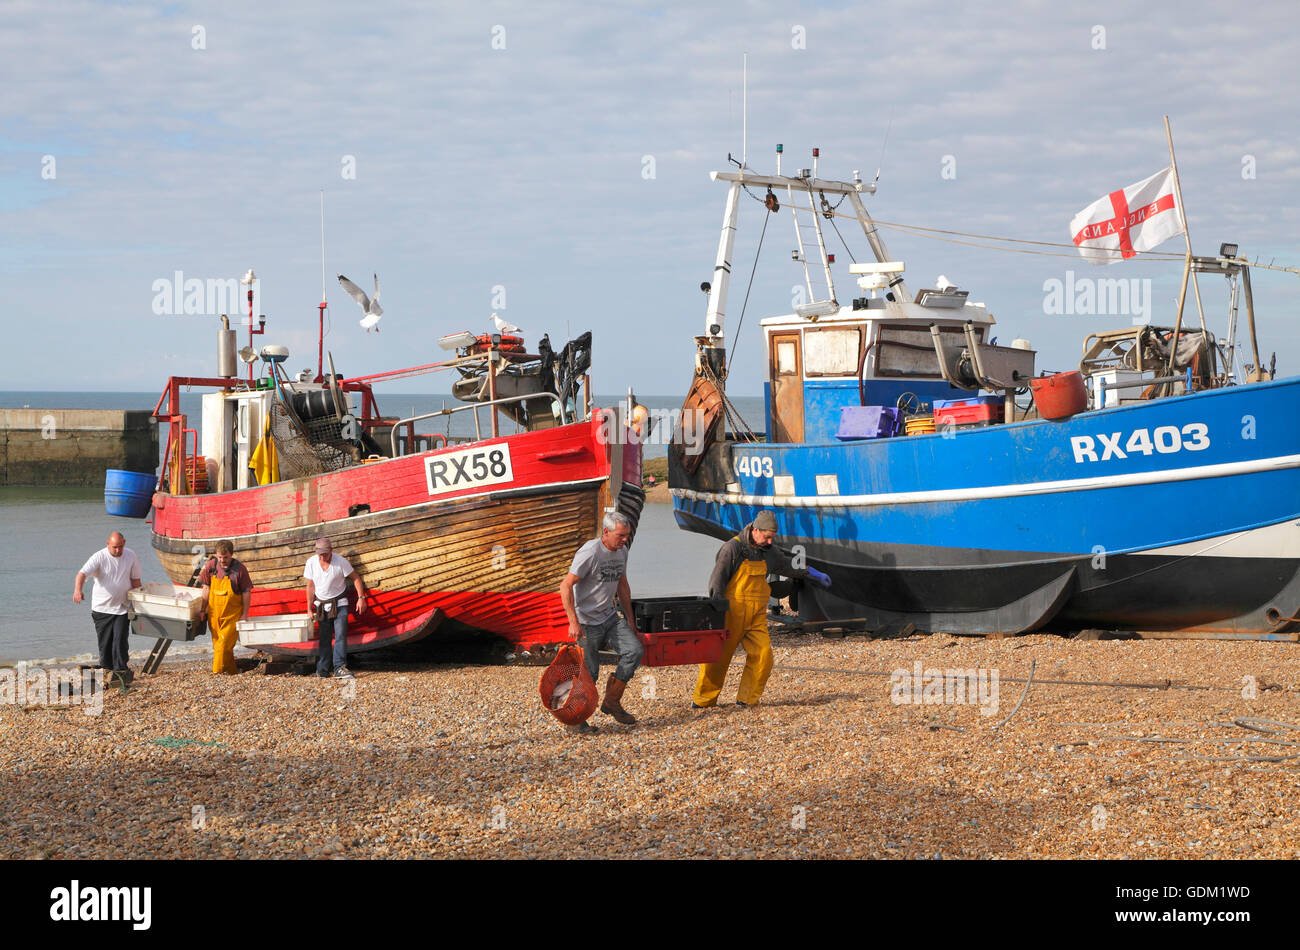 Hastings fishermen unloading fish on the Stade beach, East Sussex, England, UK - Stock Image